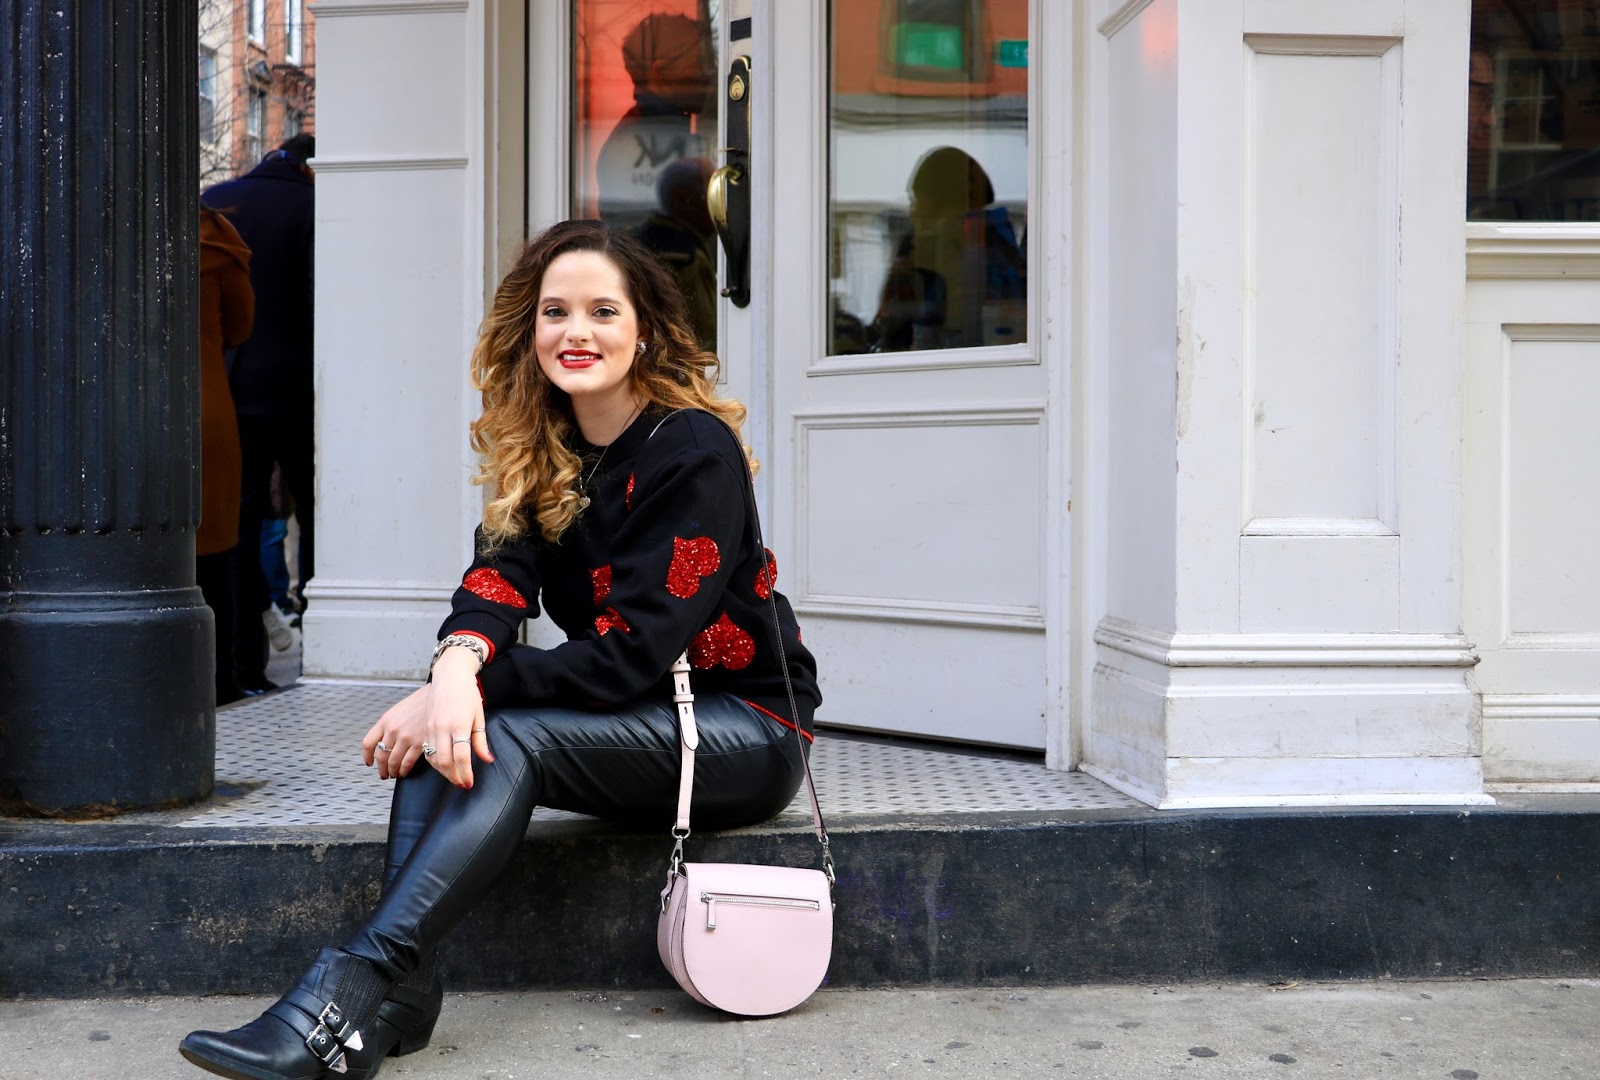 Nyc fashion blogger Kathleen Harper's Valentine's Day sweater